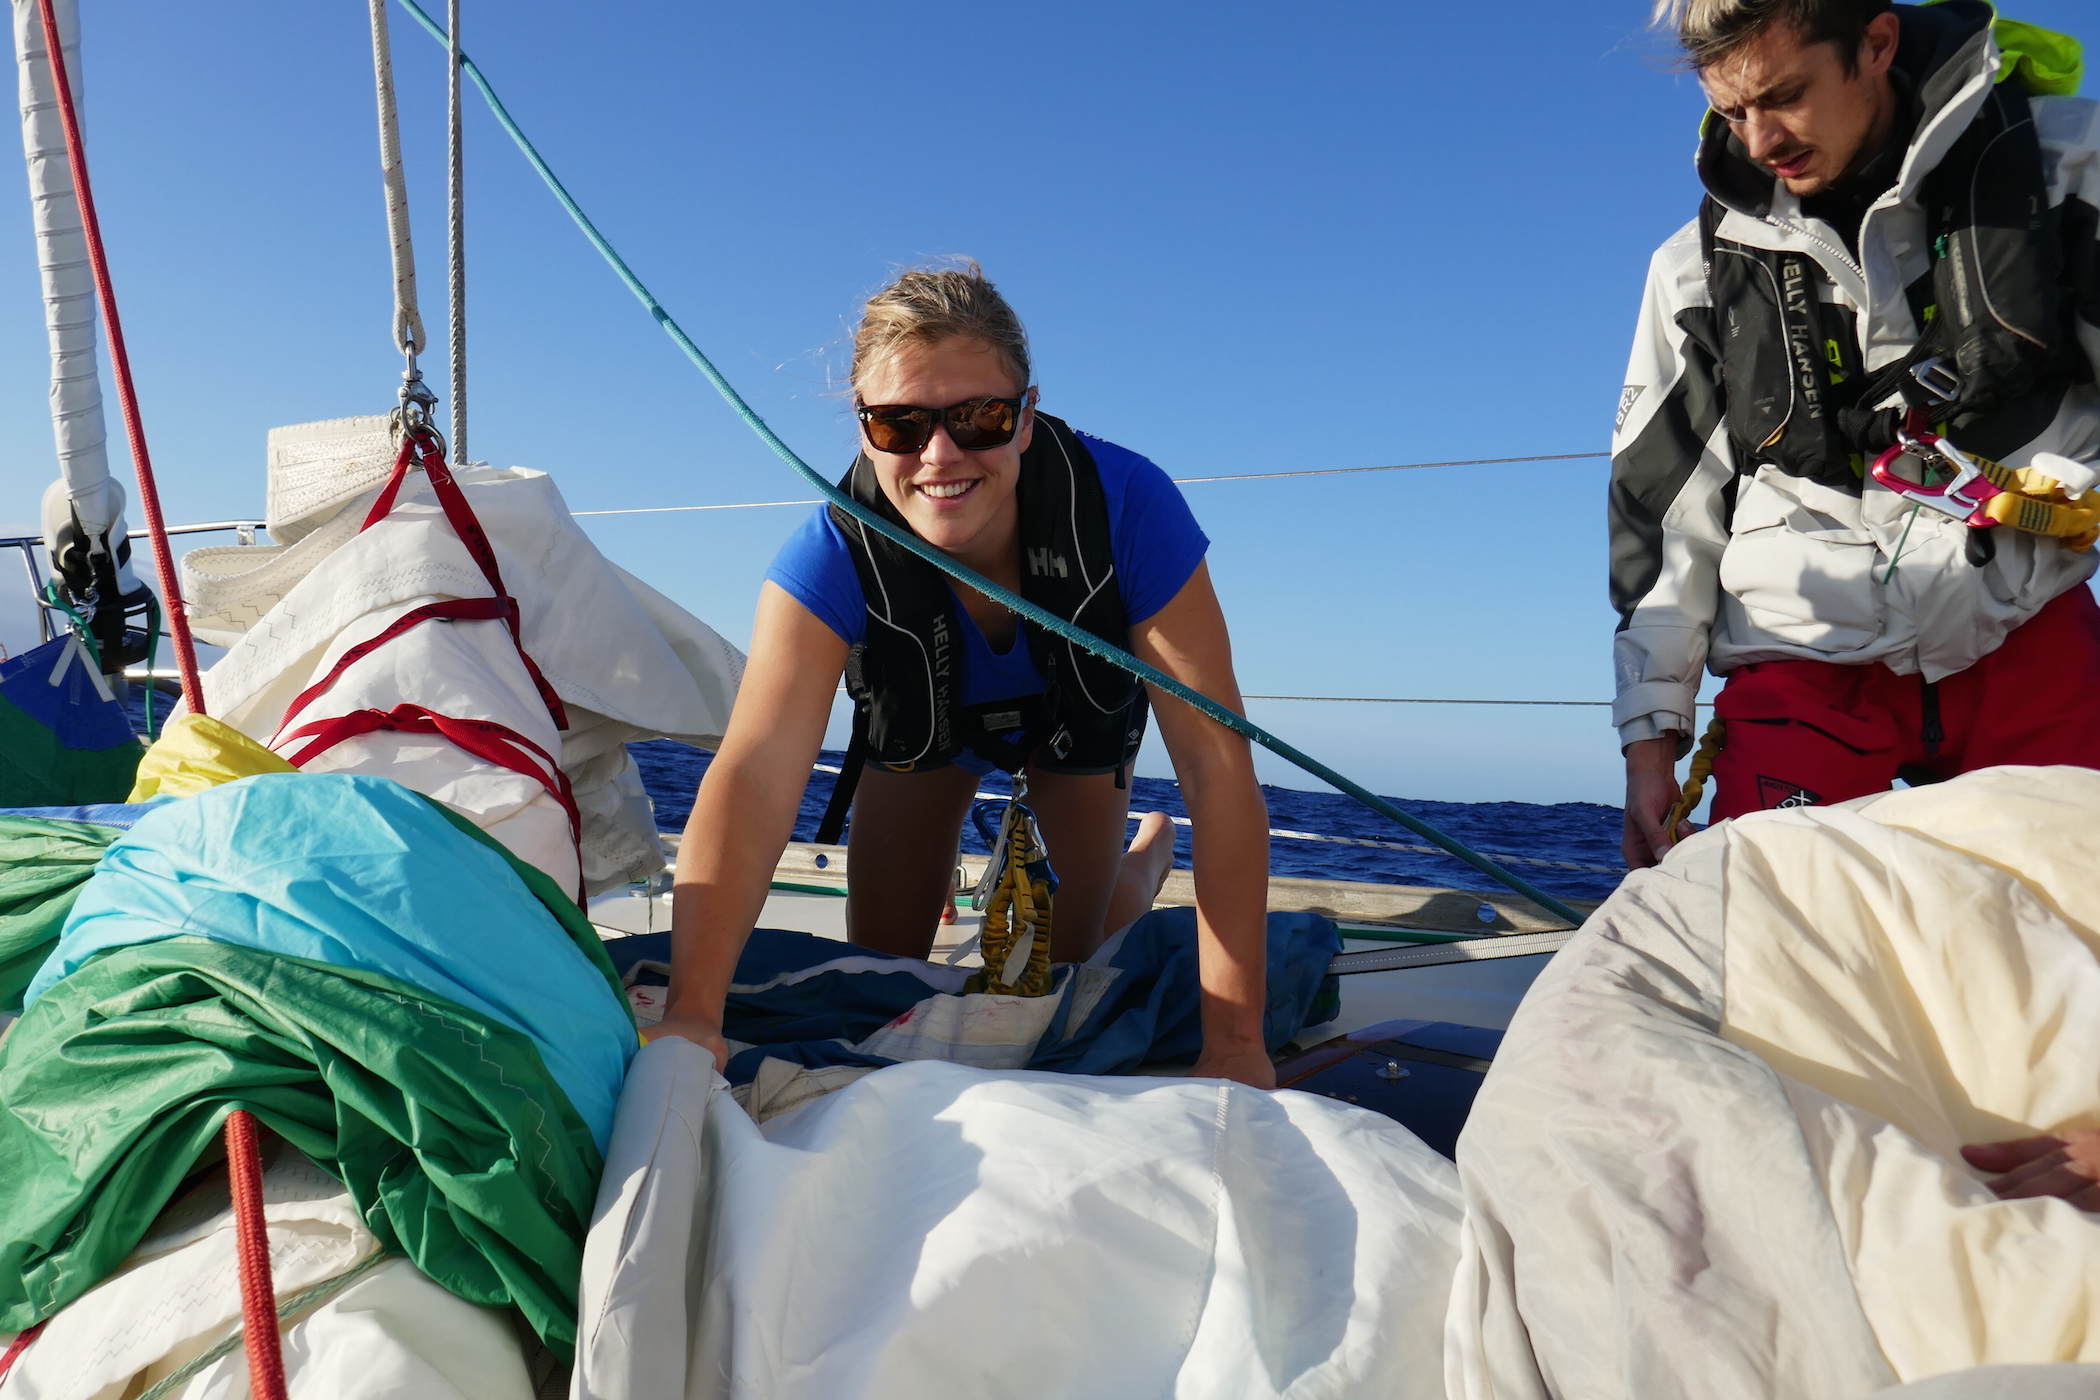 Spinnaker sailing on Isbjorn on the way to the BVI from the Chesapeake. November 2016